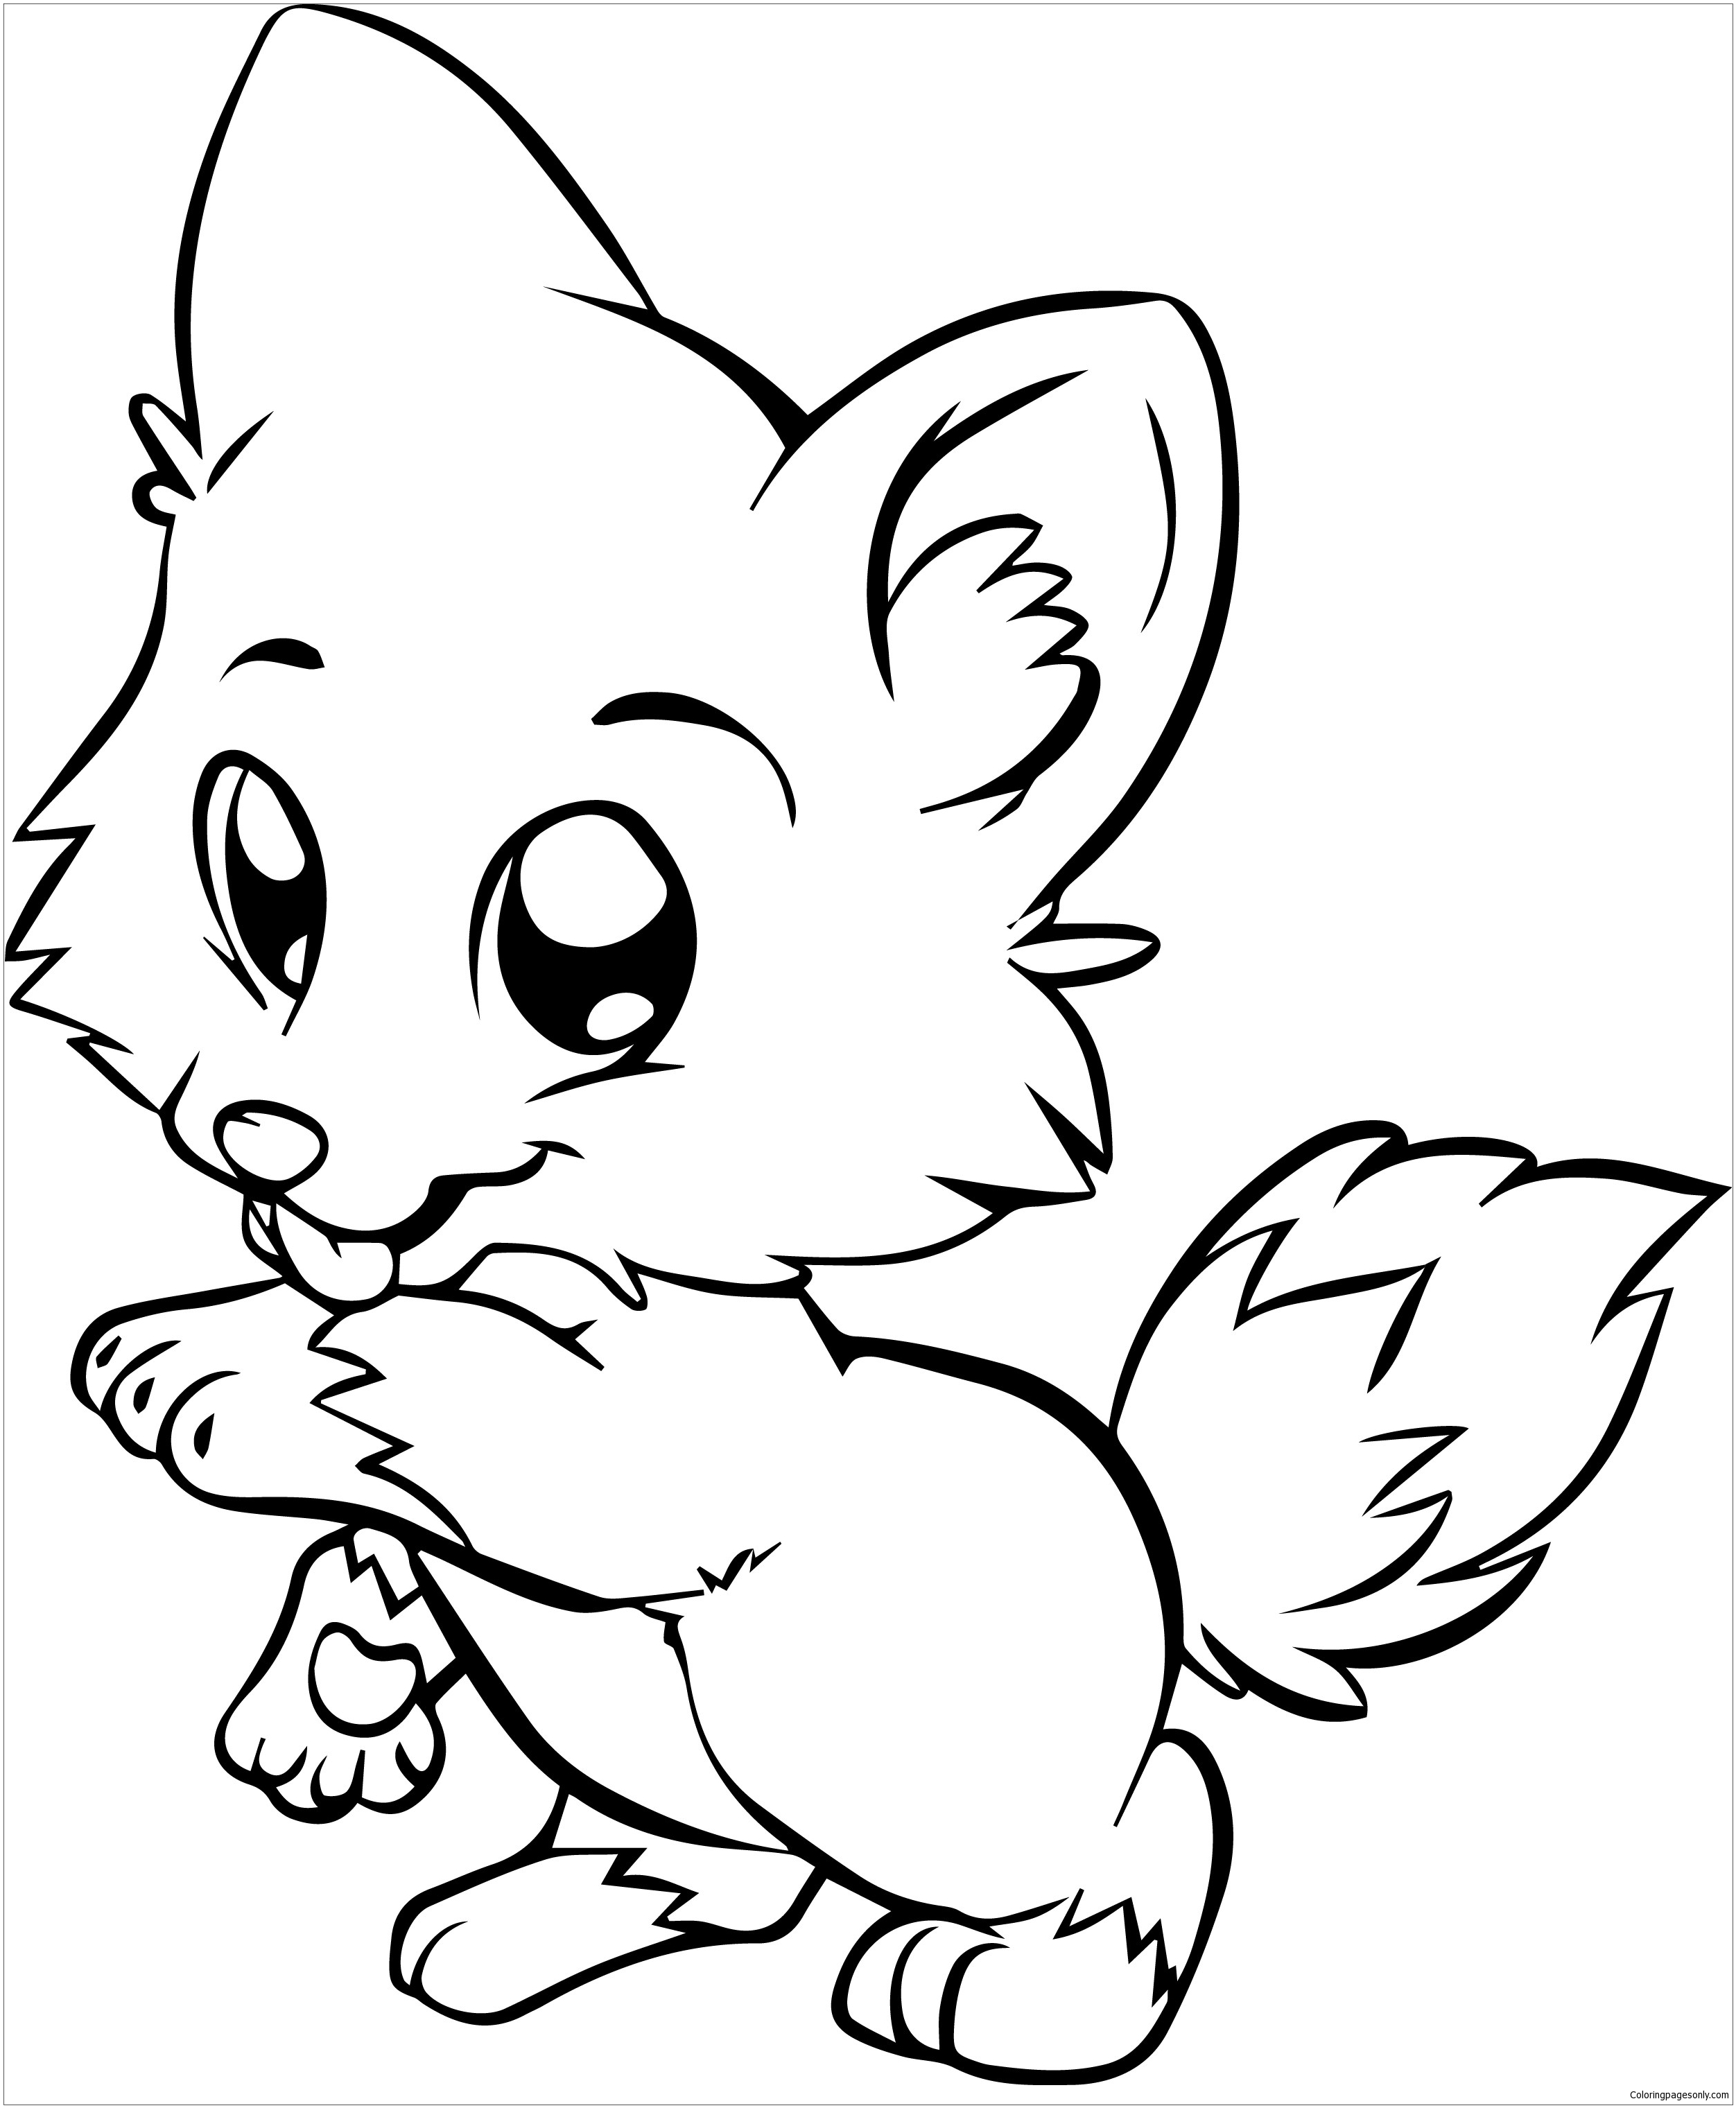 baby animals pictures to color baby dog coloring page free coloring pages online color to pictures animals baby